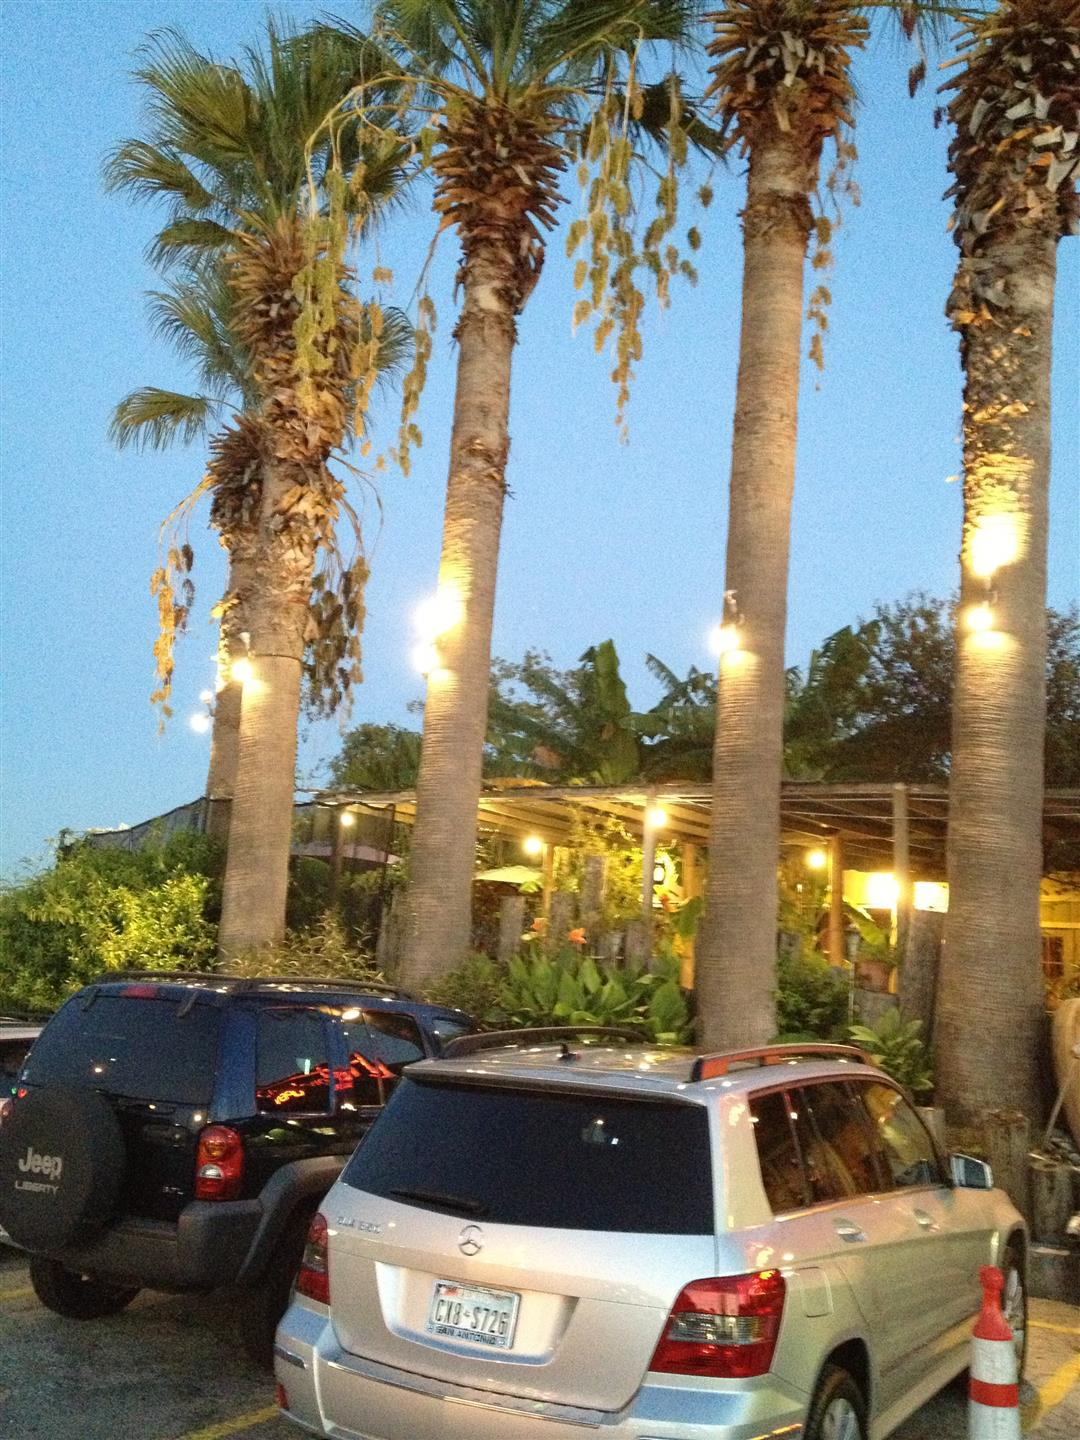 Cars in parking lot next to palm trees